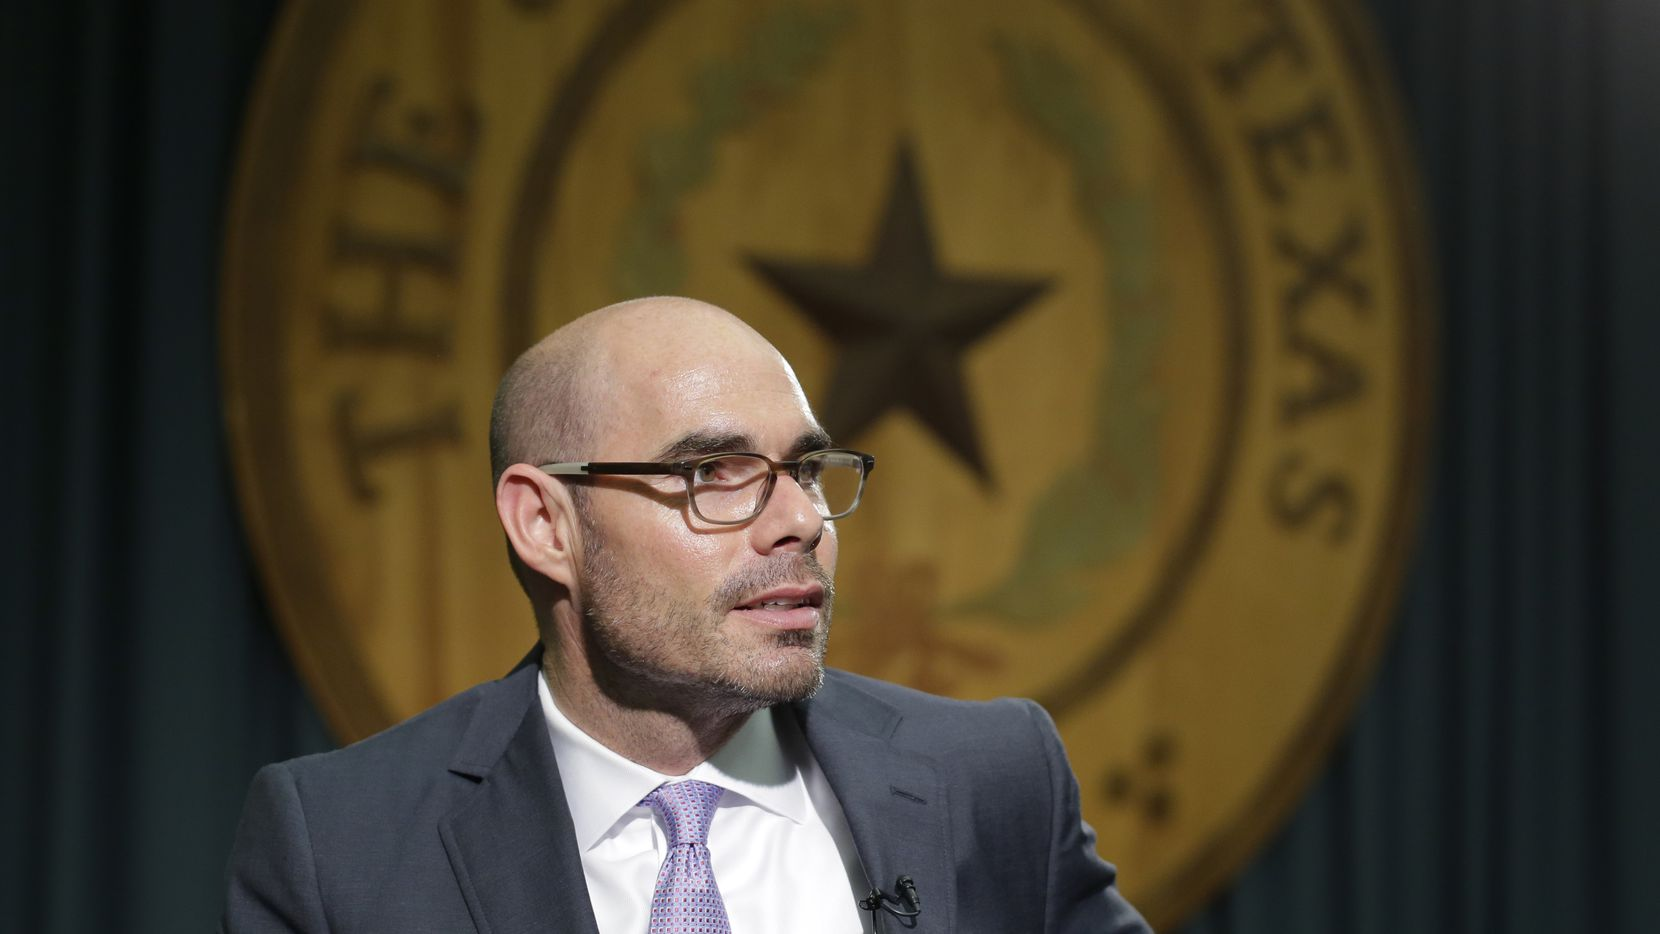 "Texas House Speaker Dennis Bonnen was accused of retaliating against Republicans who called for his ouster in October by replacing them on important committtees. Bonnen says committee appointments he's made are ""purposeful and intentional"" and reflect the skills of the people he appoints, not an effort to punish others."